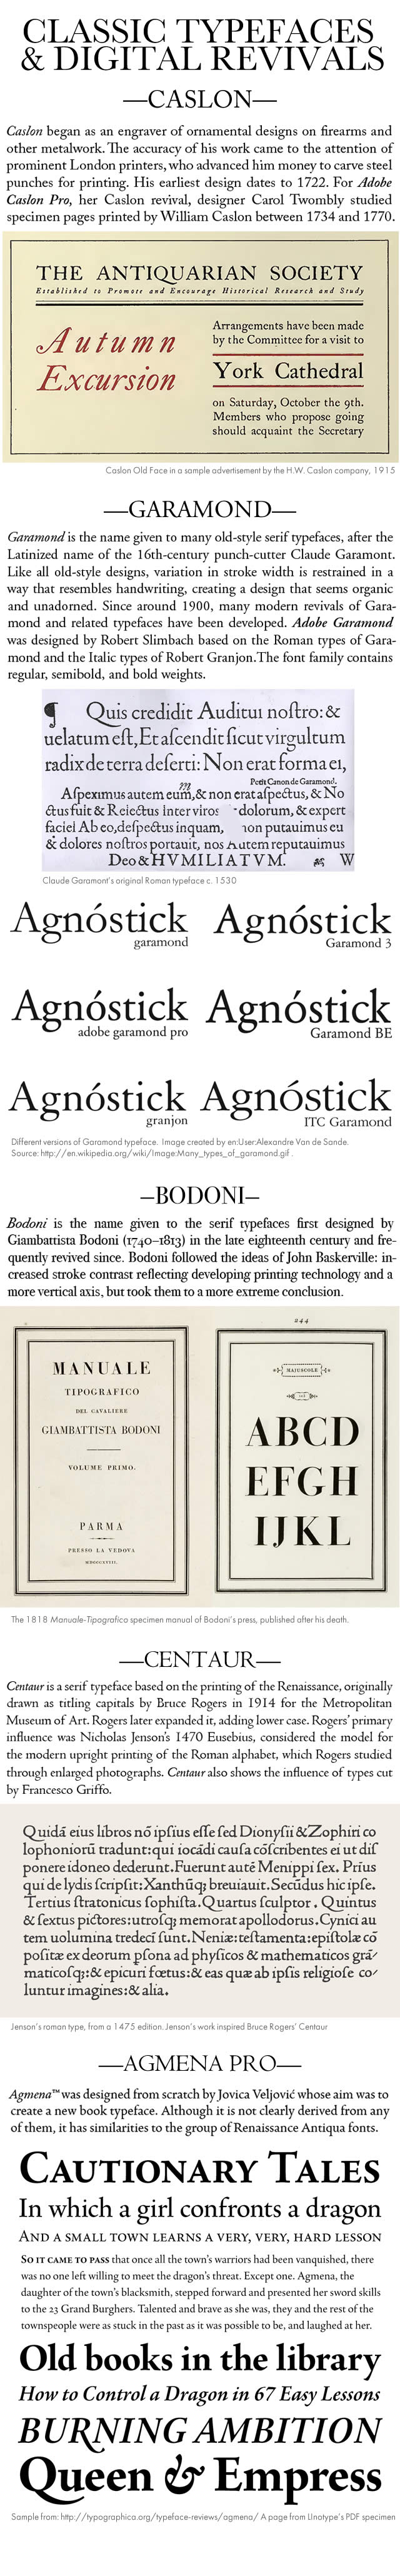 Classic Typefaces and Digital Revivals